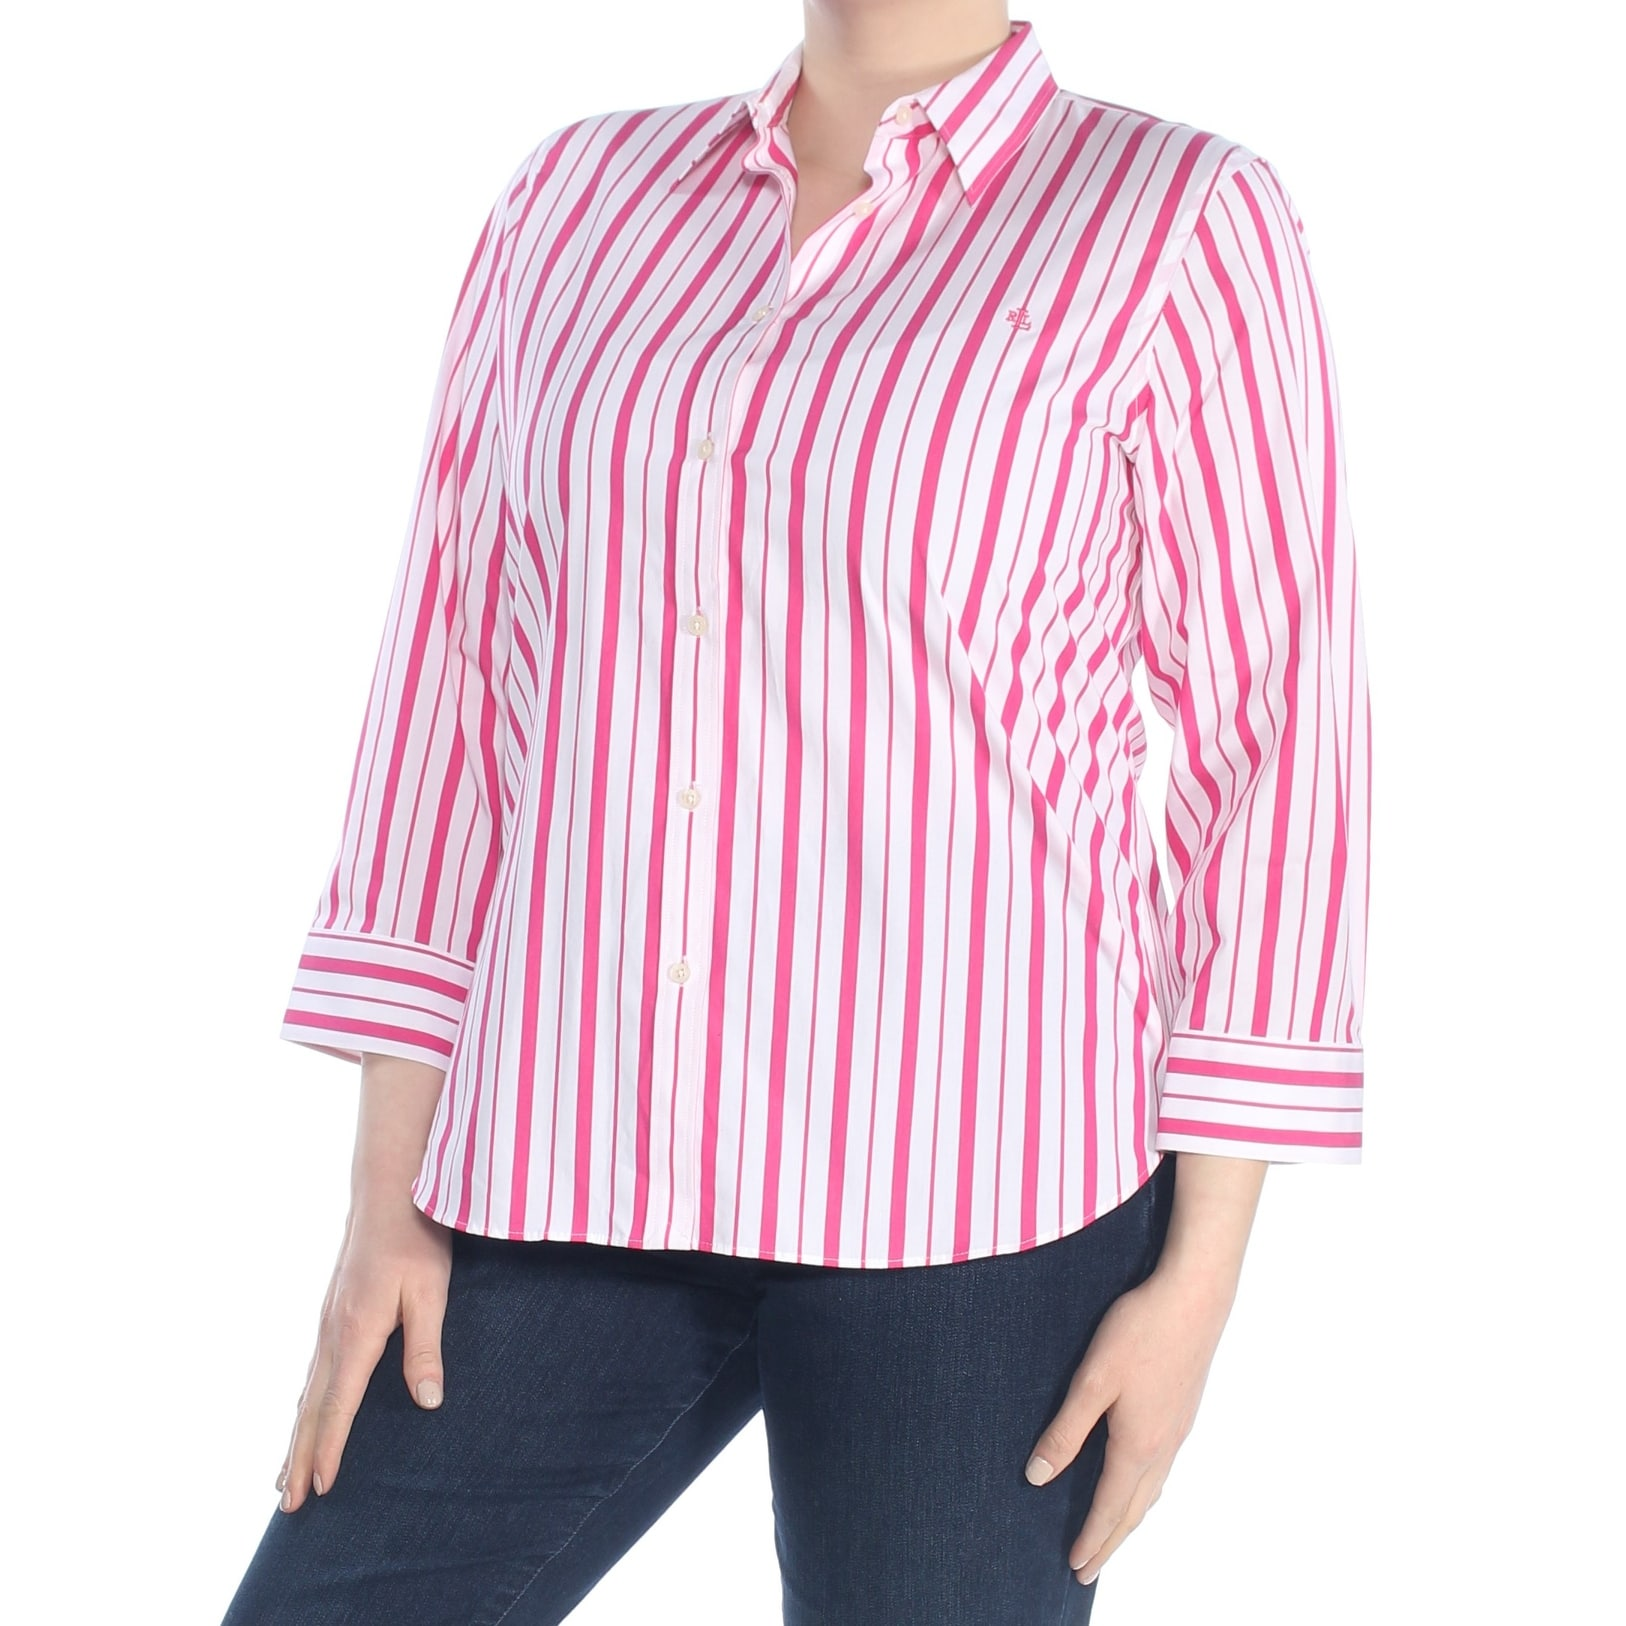 Ralph Lauren Womens Pink Striped Long Sleeve Collared Button Up Wear To Work Top Size Xl